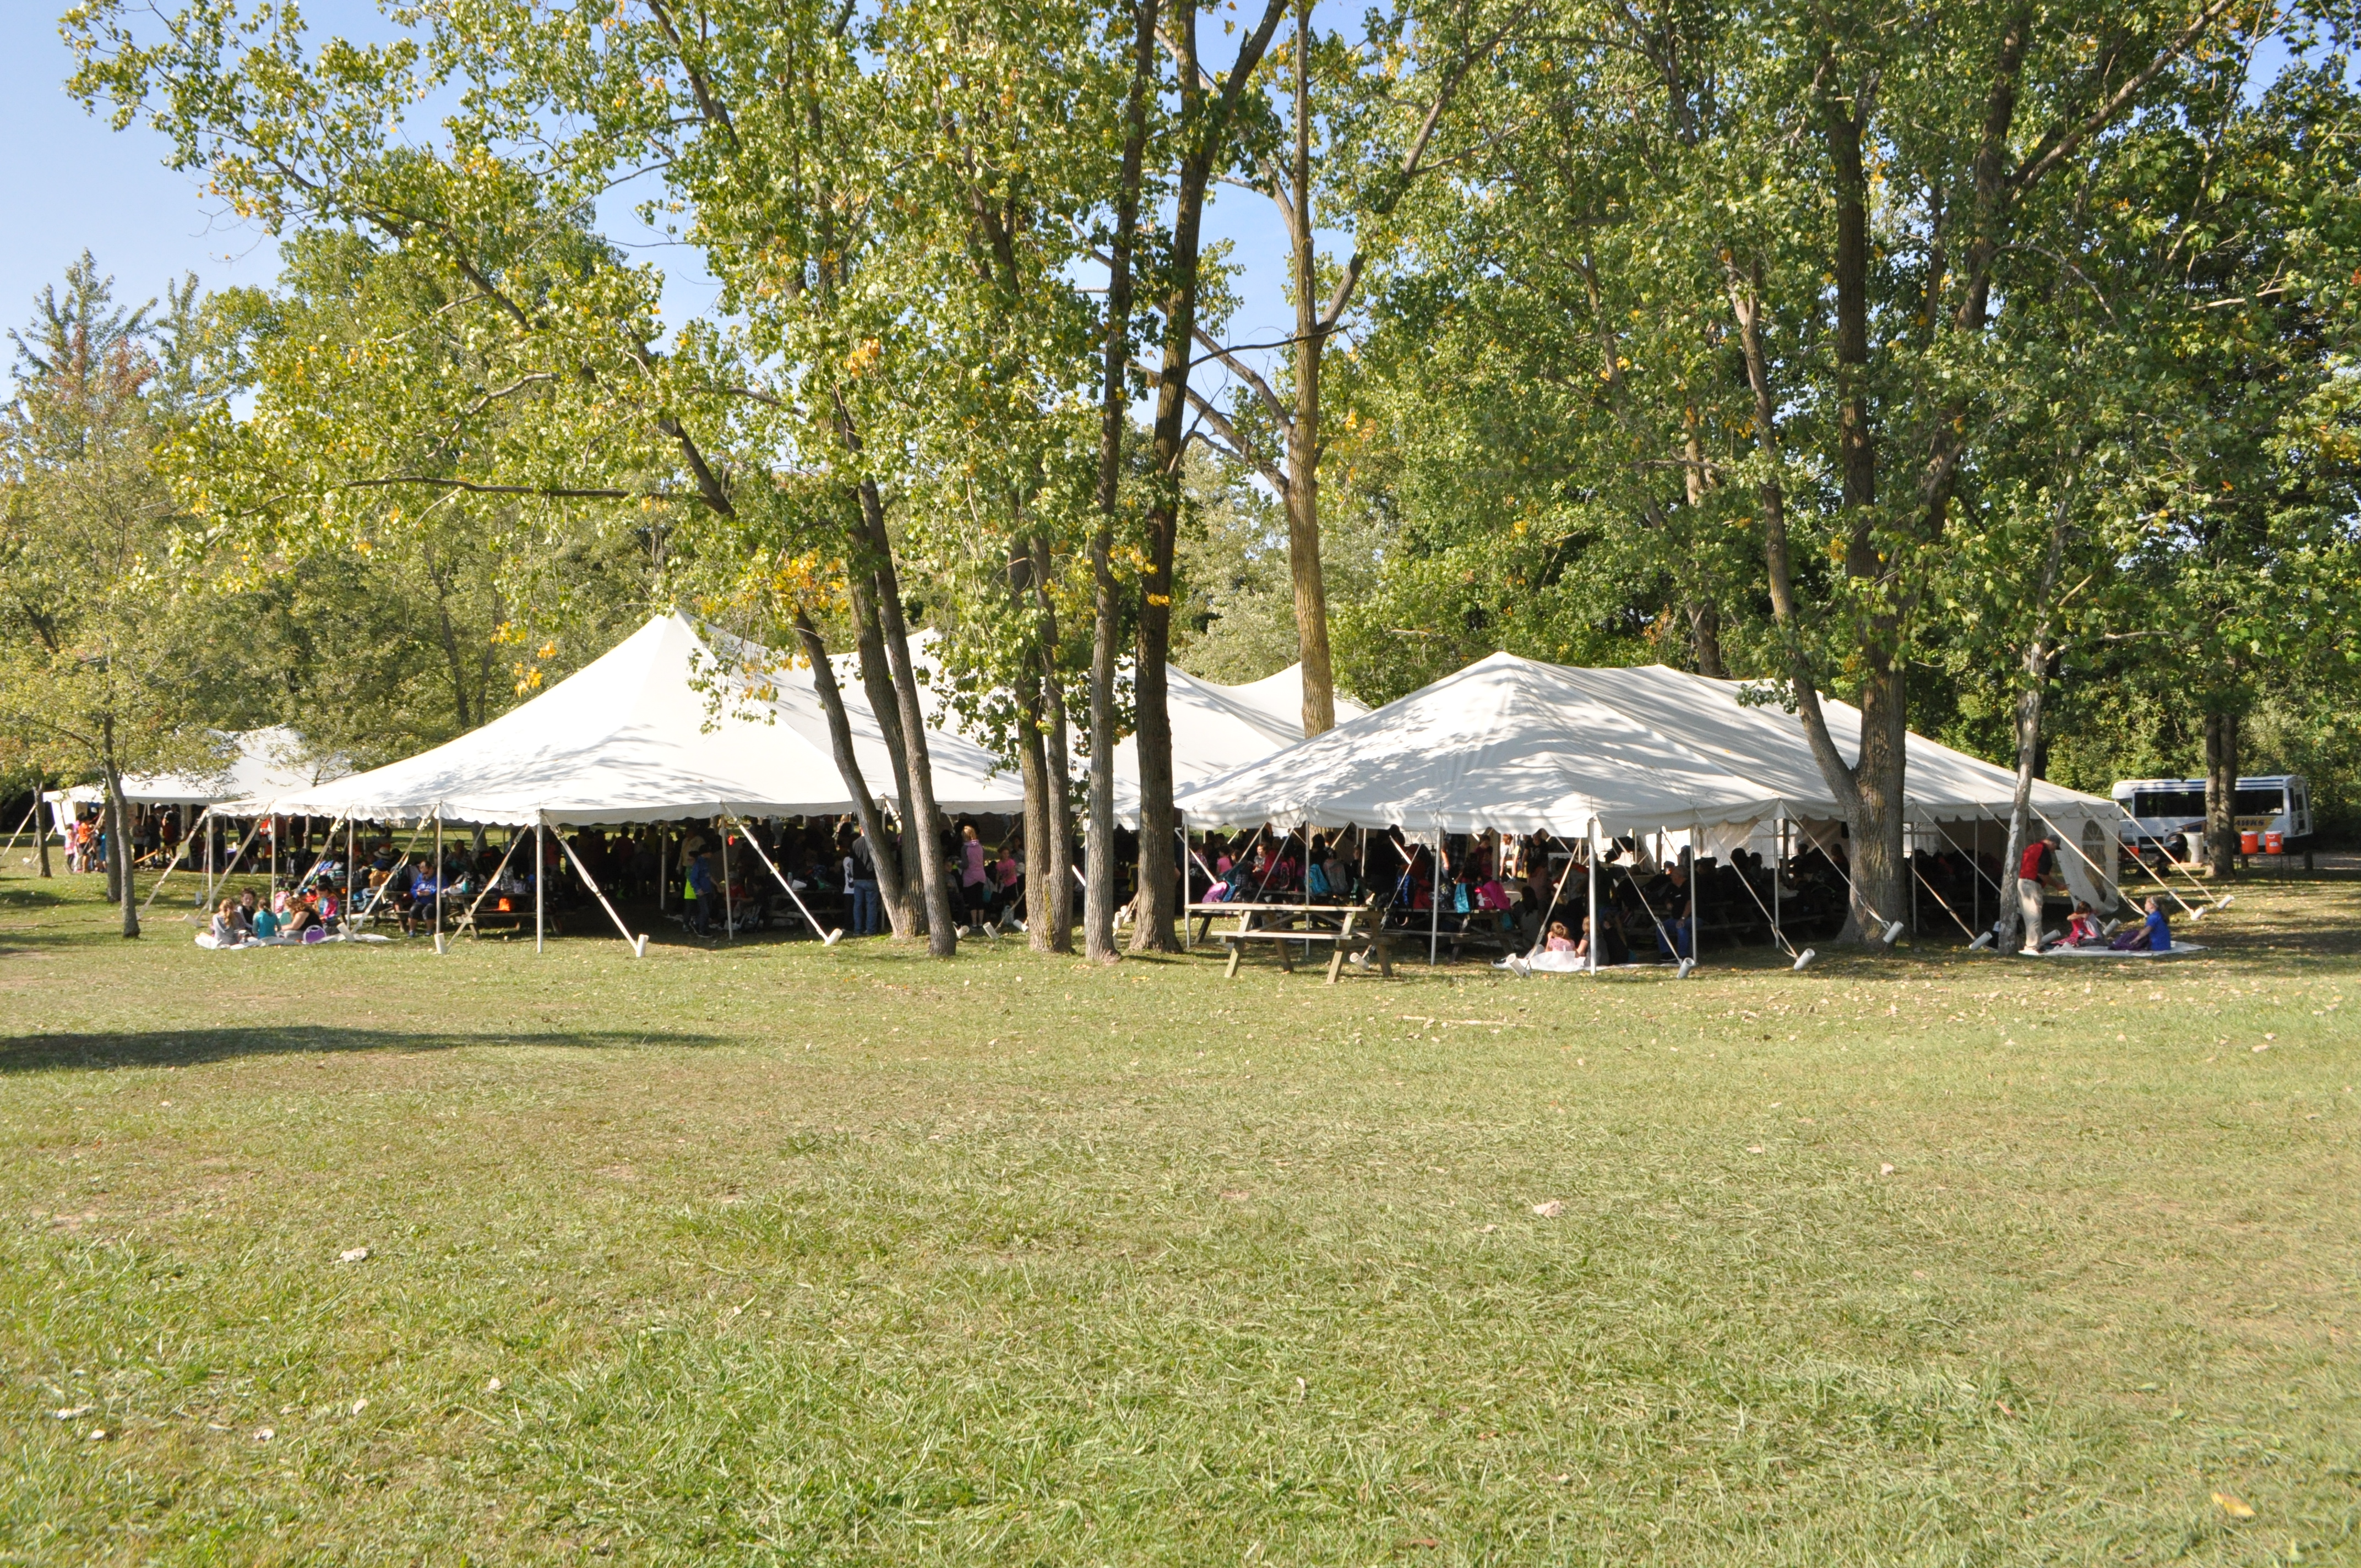 Local Tent Business Stretches Over CK